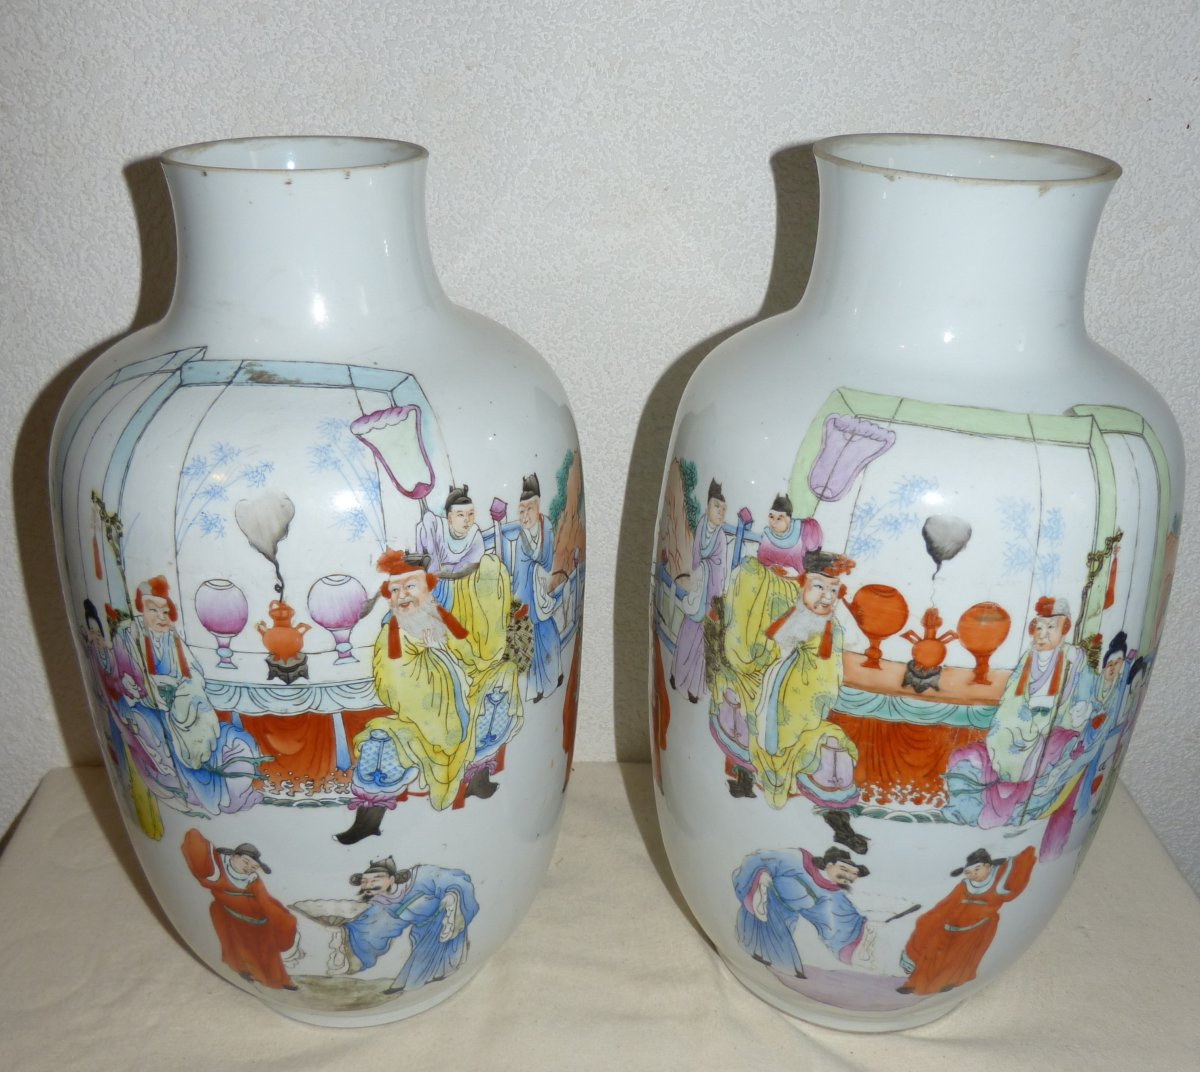 China, Brand Qianlong: Pair Of Large Vases Porcelain Decor Characters 43cm